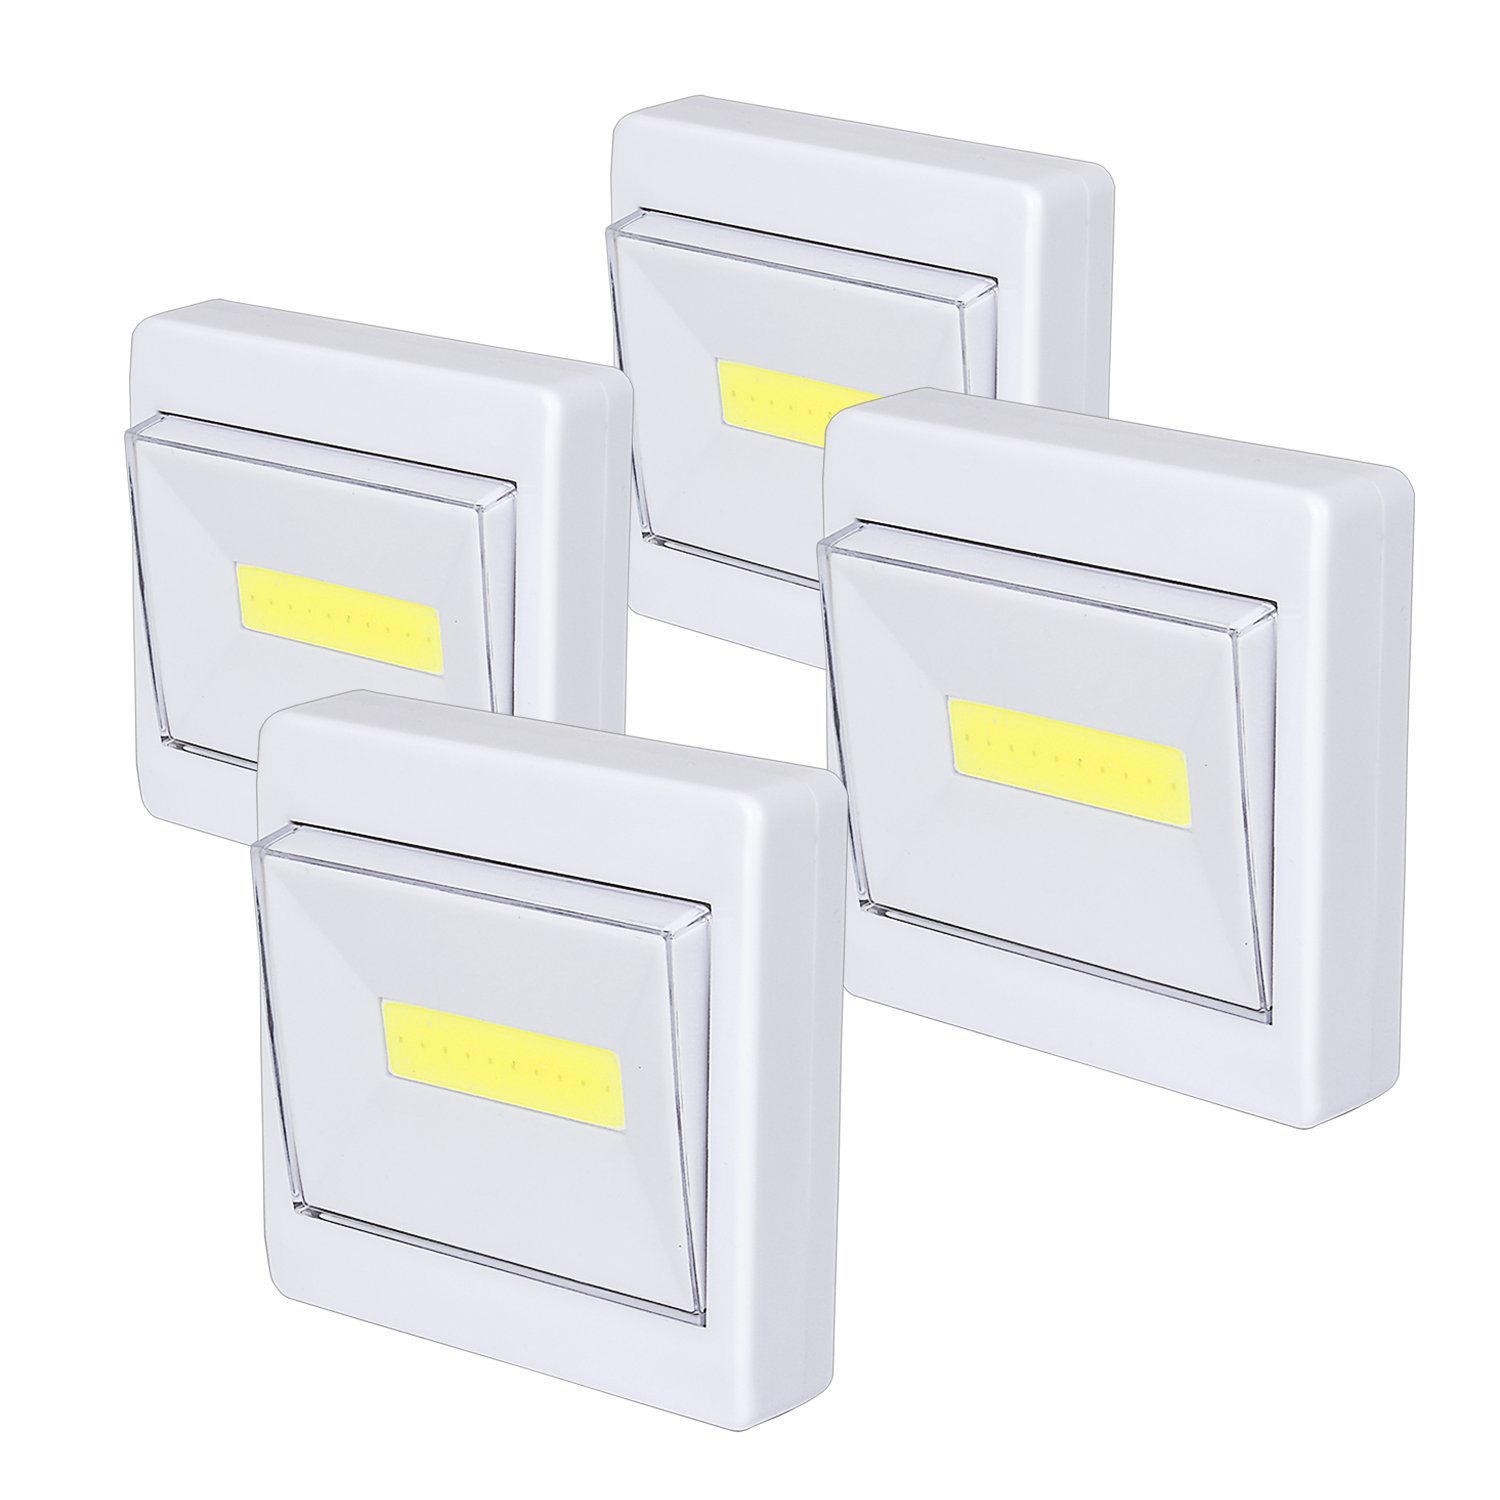 Closet light 200 LM Super Bright Switch Stick Anywhere COB Led Night Light Battery Operated for Shed Shelf Cabinet Garage Attic Emergency (4 pack)